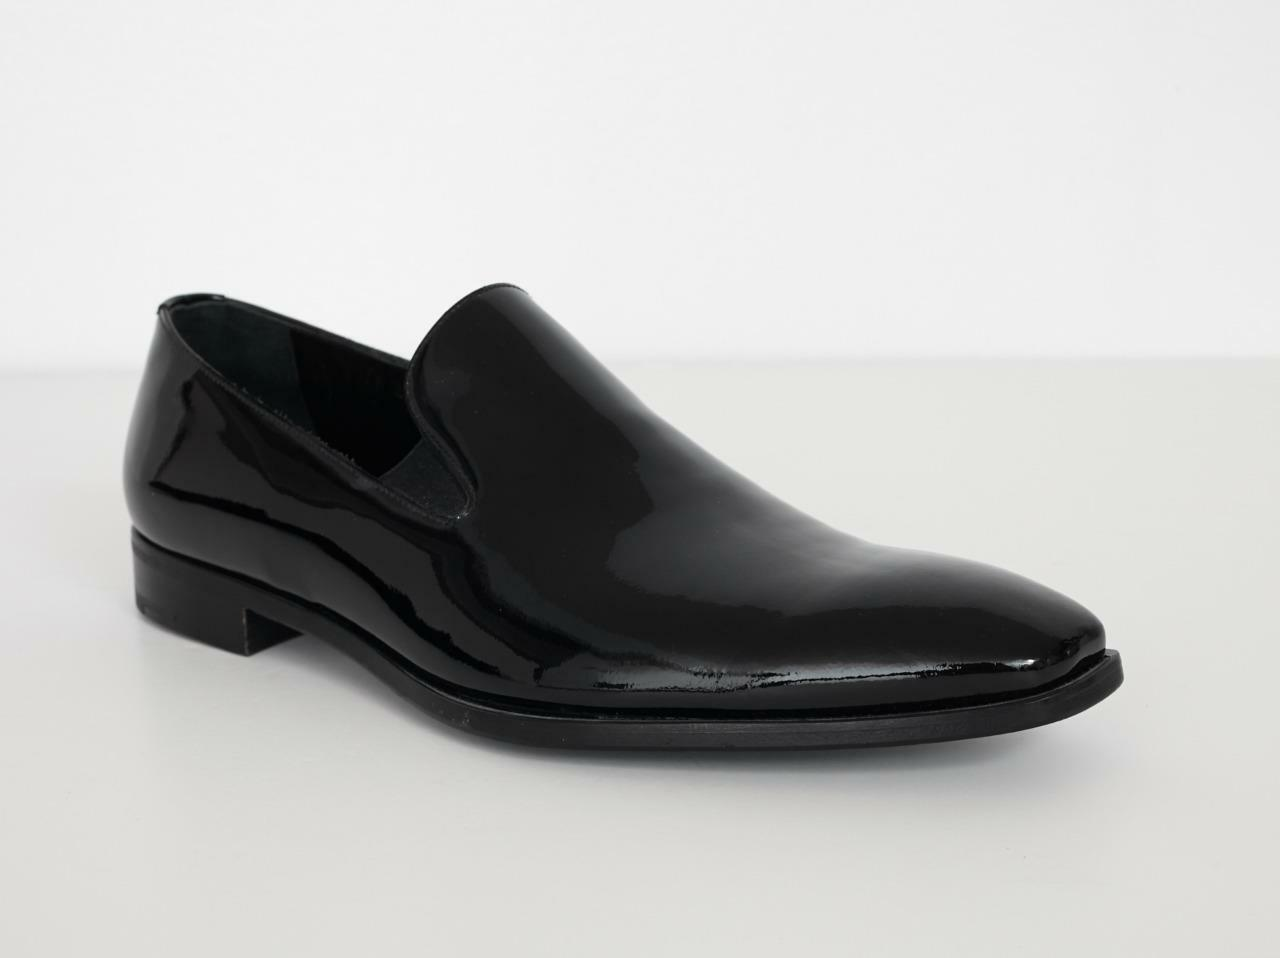 PRADA Mens Formal Black Patent HIGH SHINE Slip-On Dress shoes Loafers NEW 8.5